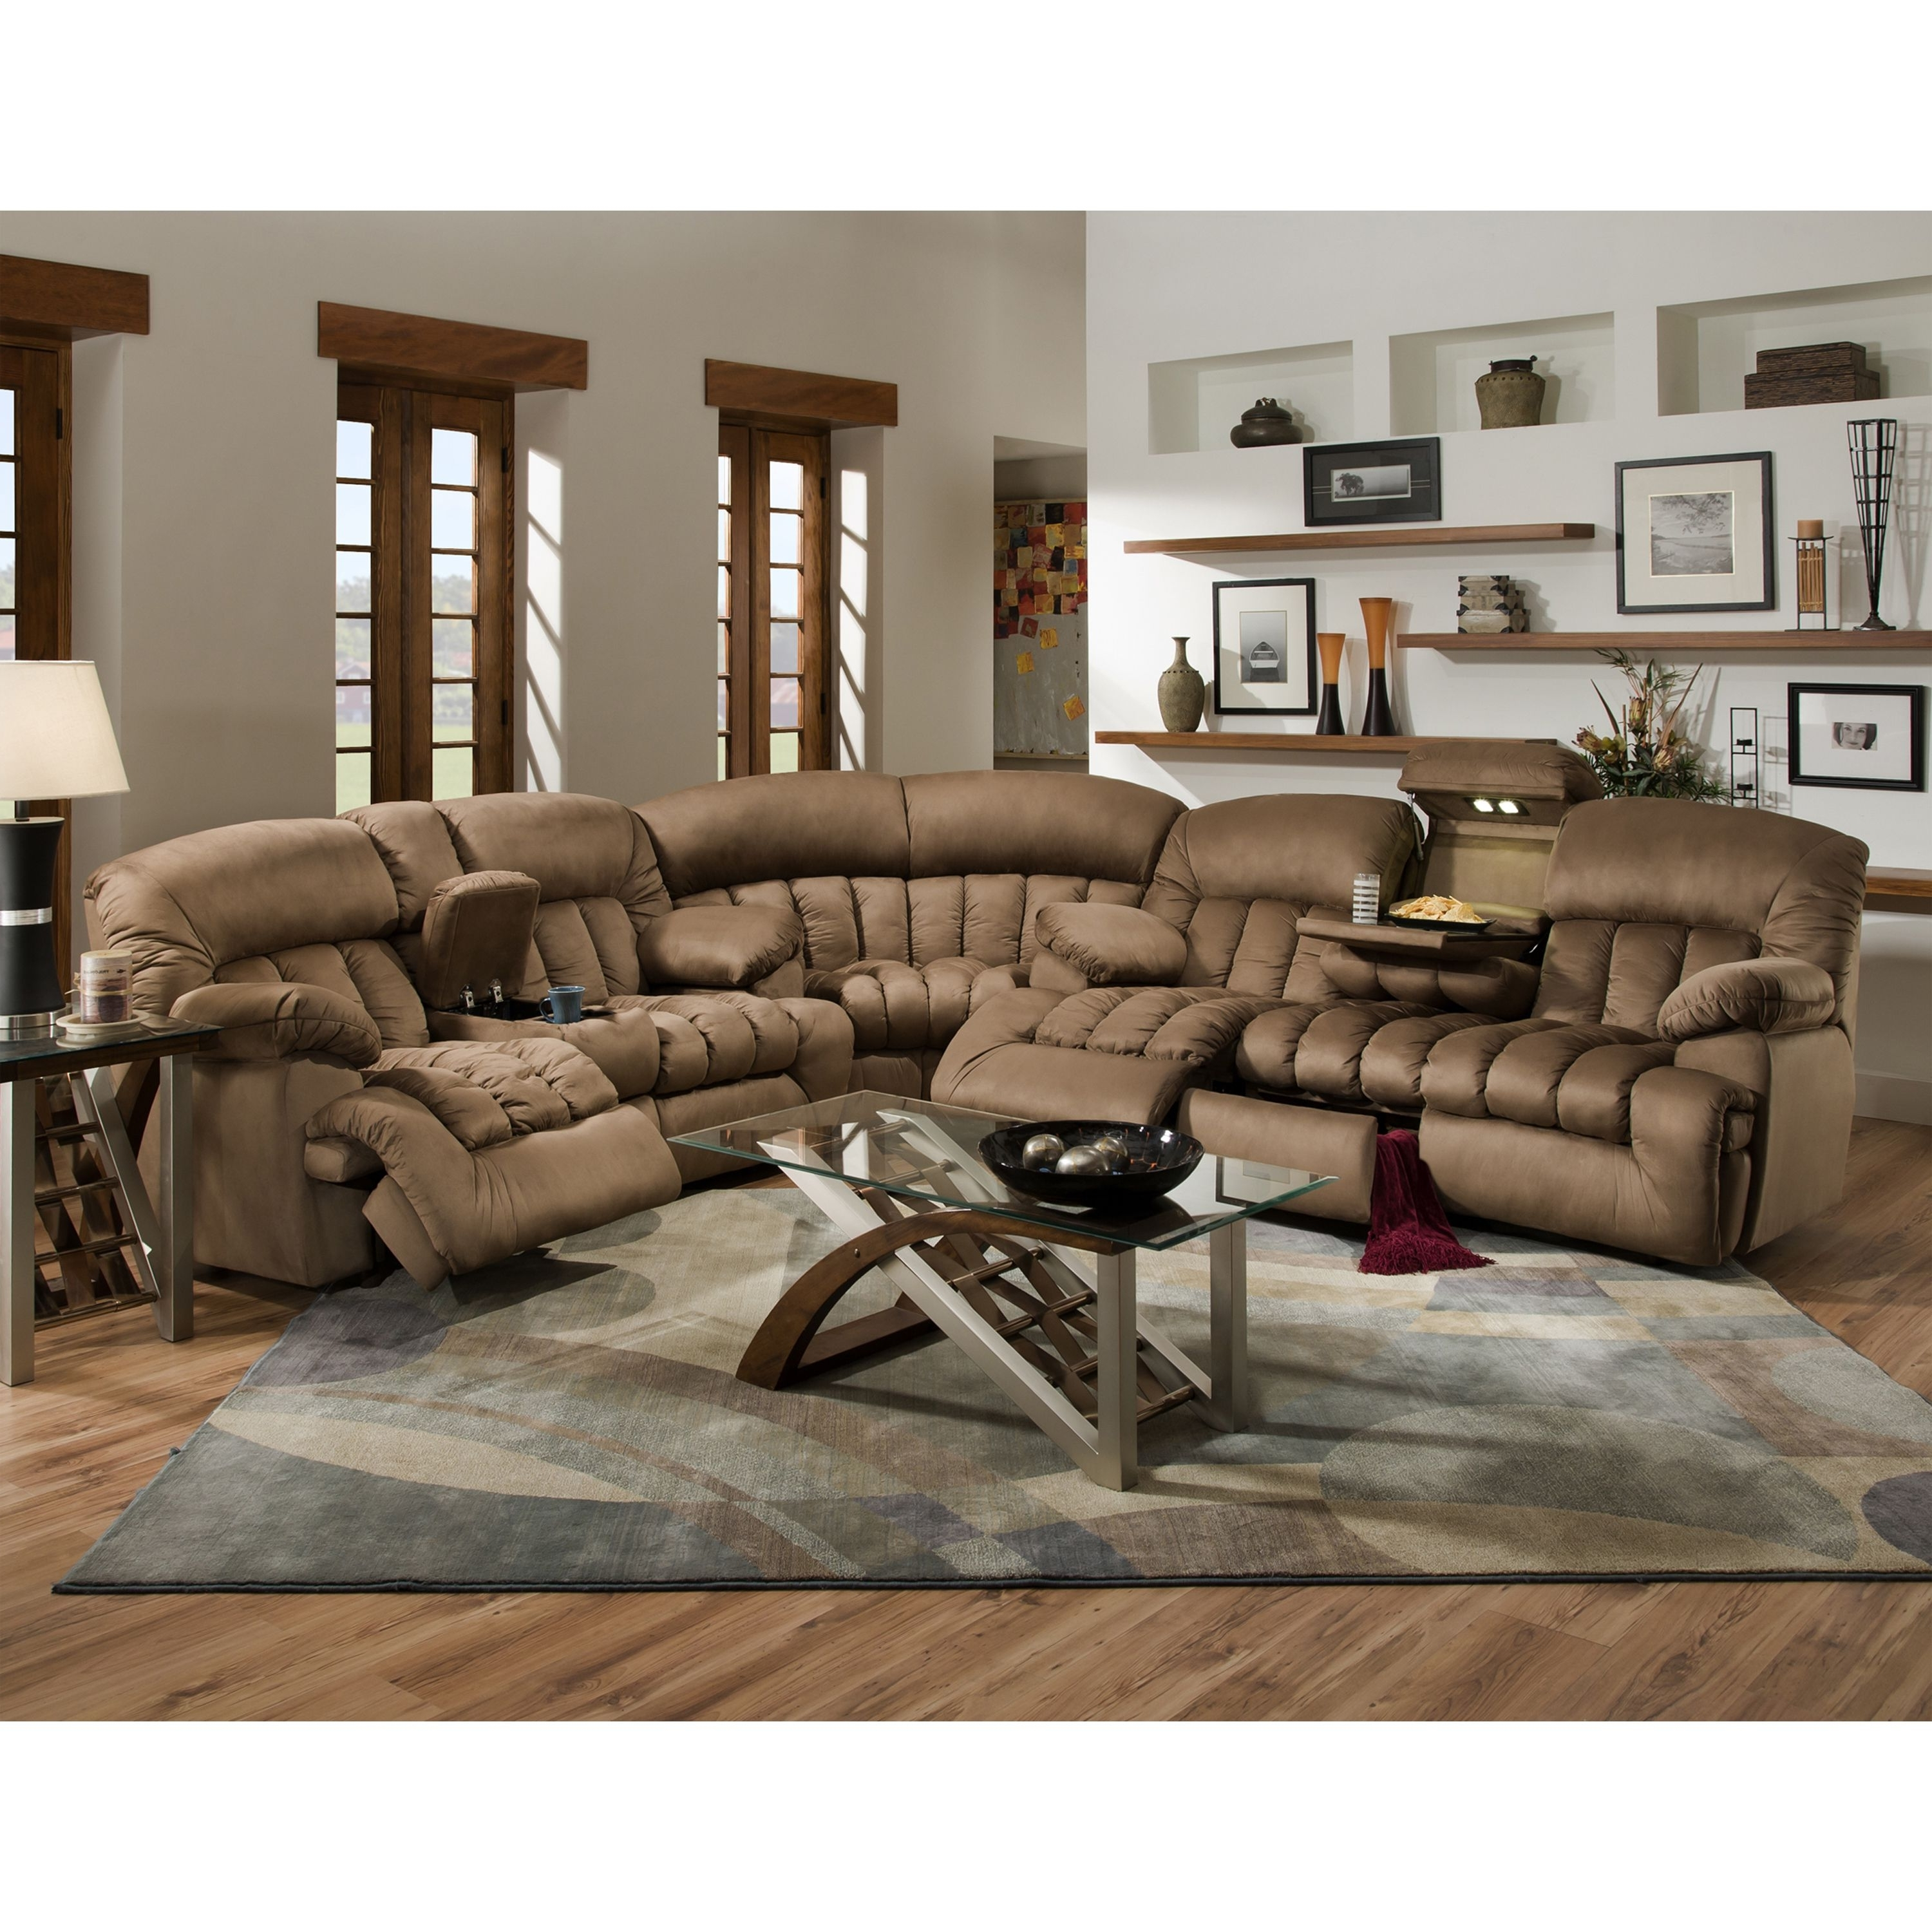 Most Popular This Gorgeous, Comfortable, 3 Piece Sectional Sofa Features A Throughout Murfreesboro Tn Sectional Sofas (View 11 of 20)